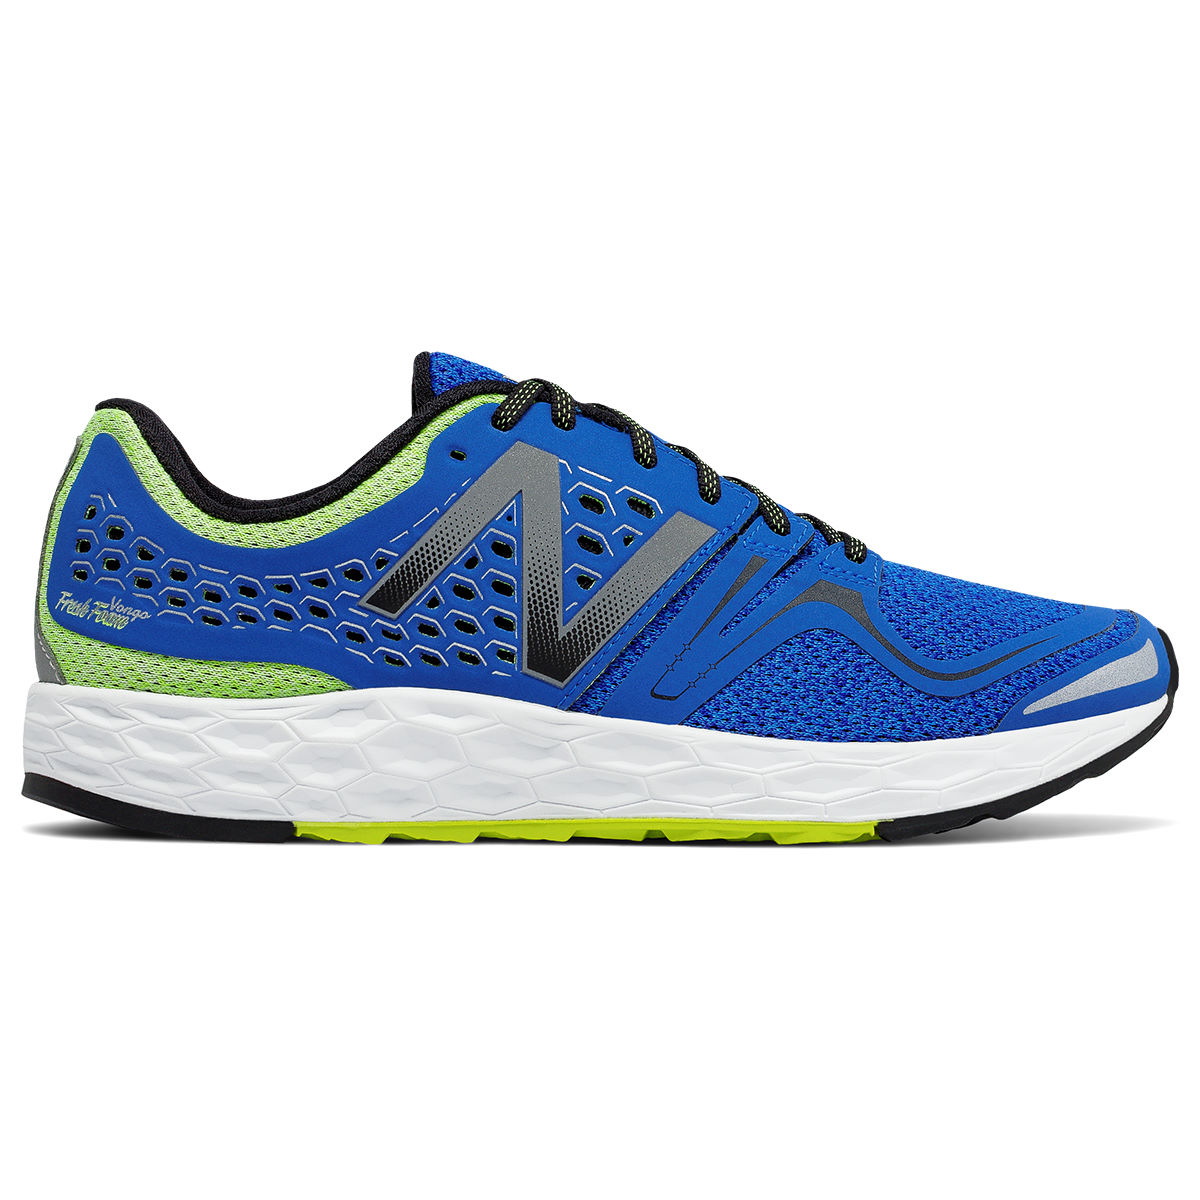 New Balance Support Running Shoes